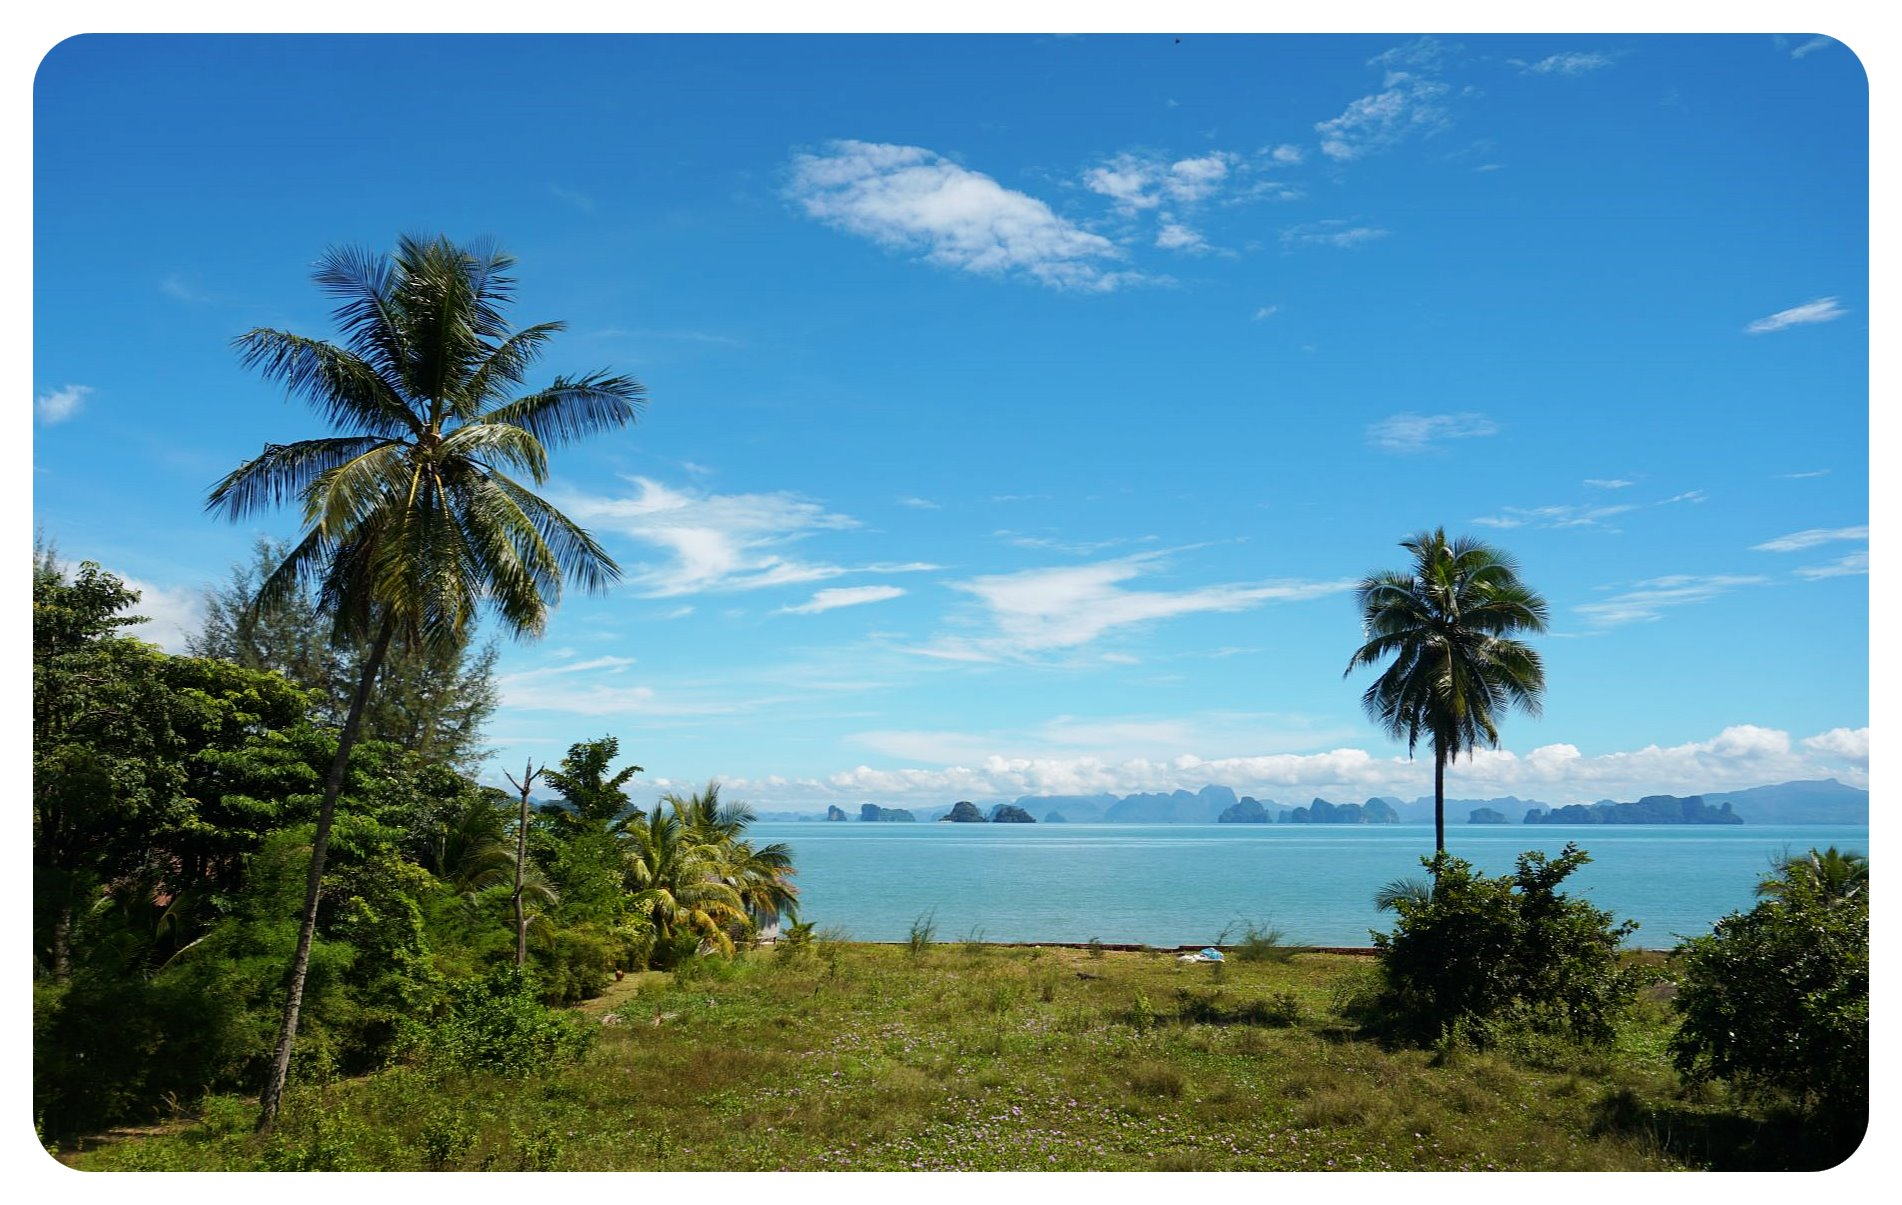 koh yao noi views